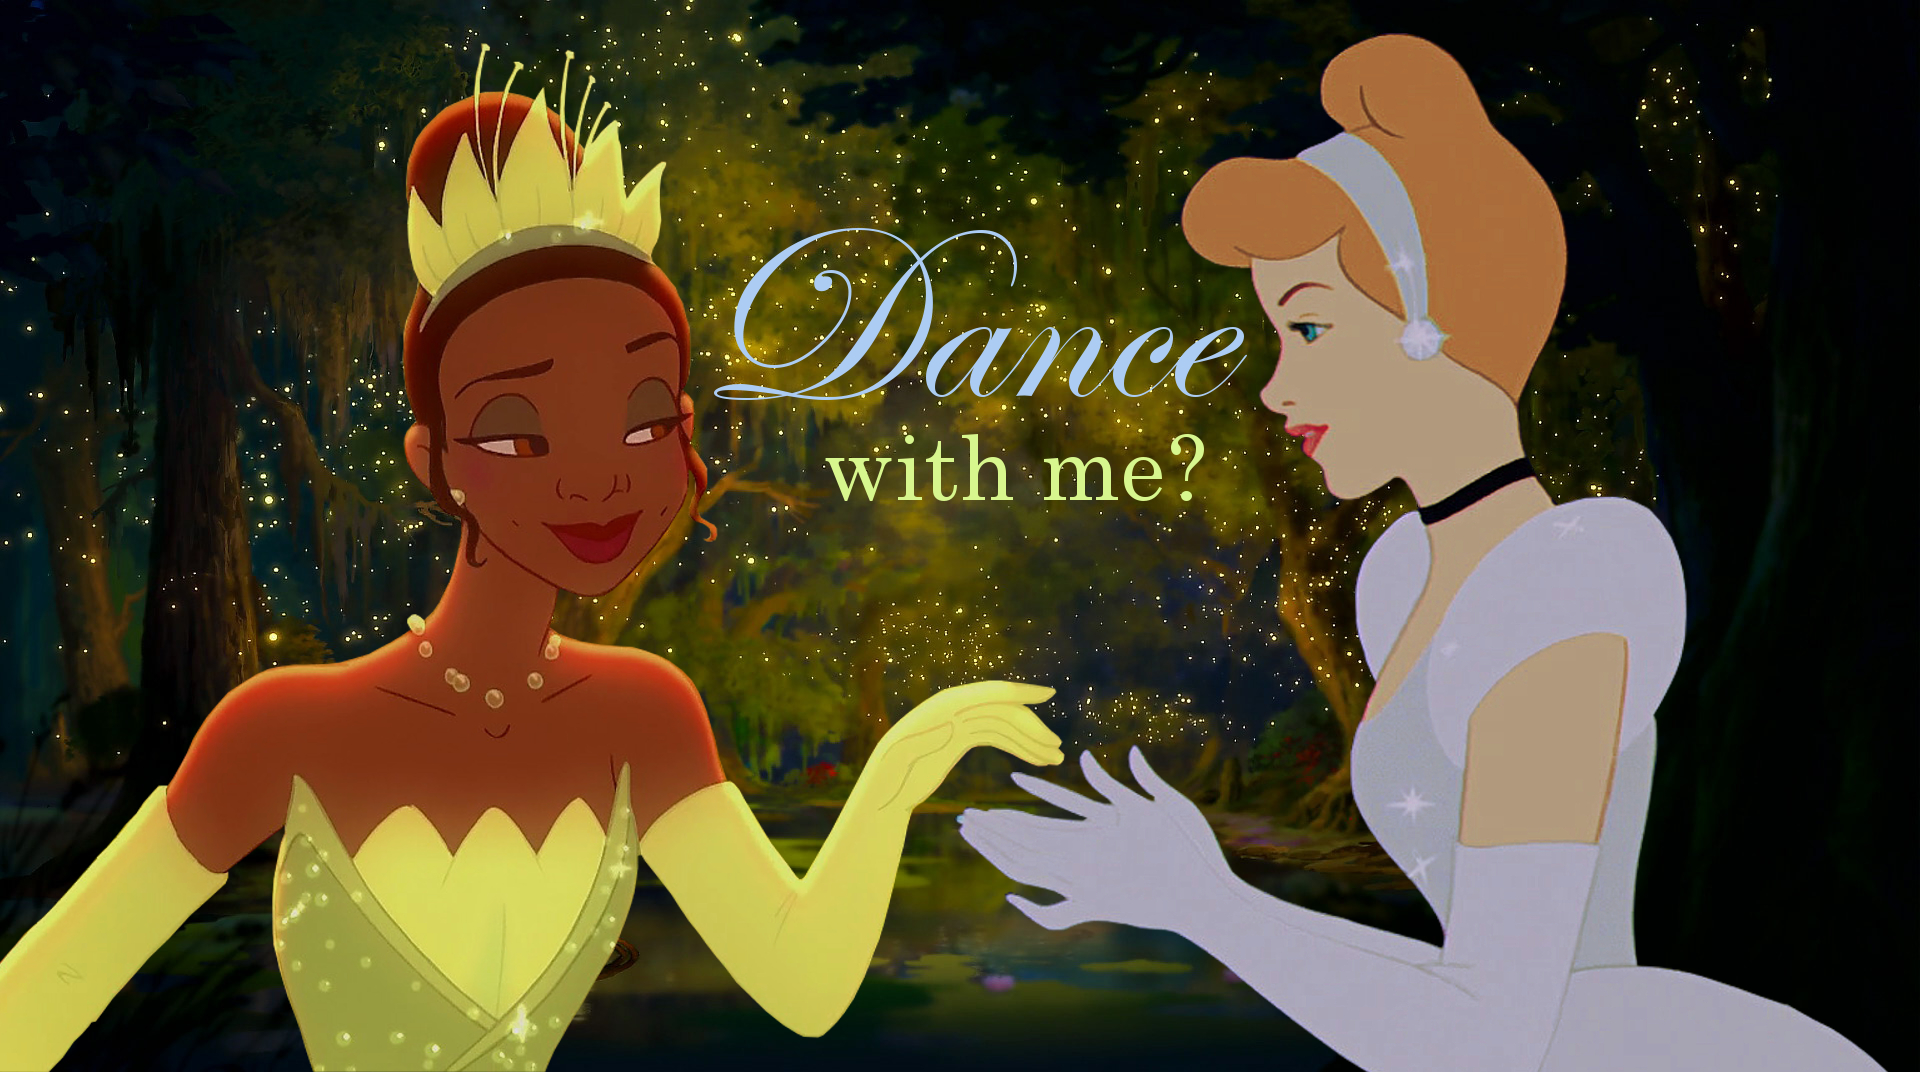 Dance with me?